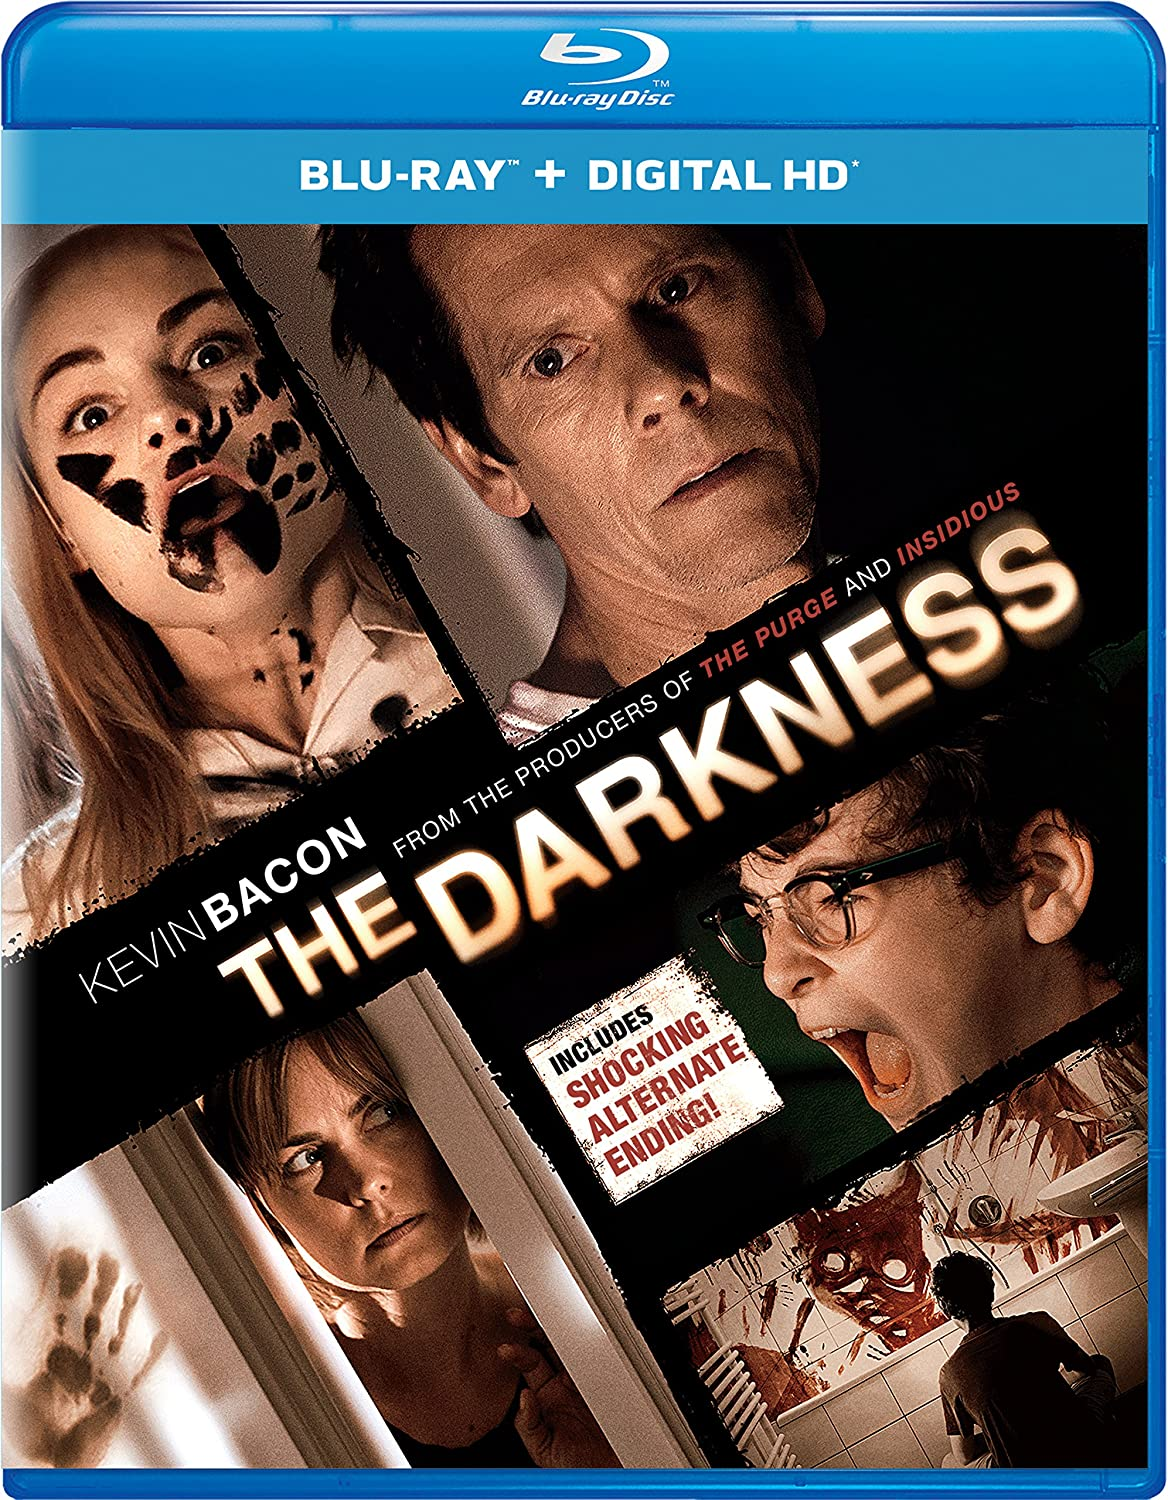 The Darkness 2016 BluRay 1080p 1.6GB [Hindi 5.1 – English] MKV